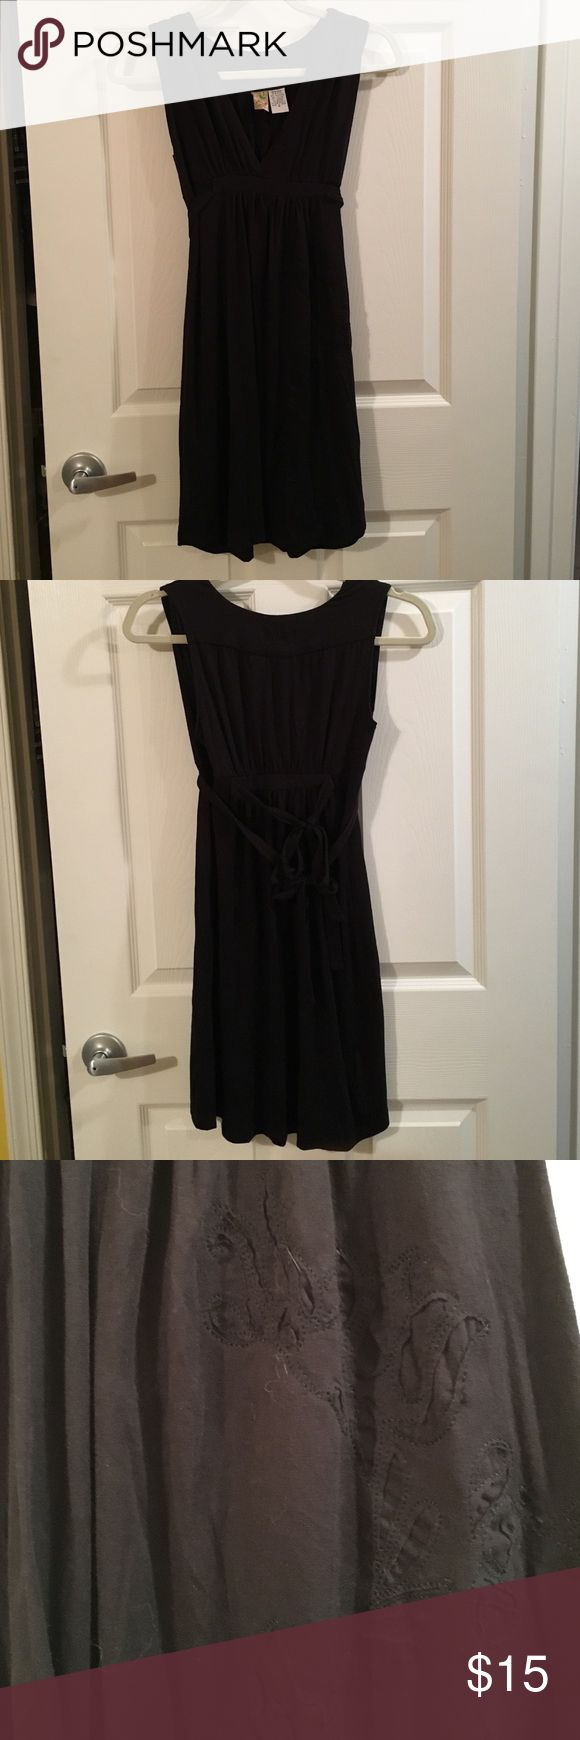 Black dress with flower details Black dress with flower details. Has tie from front to back and another tie in back. Billabong size small. 49% polyester 49% viscose 2% spandex. Tie from front left has small tear. Billabong Dresses Mini